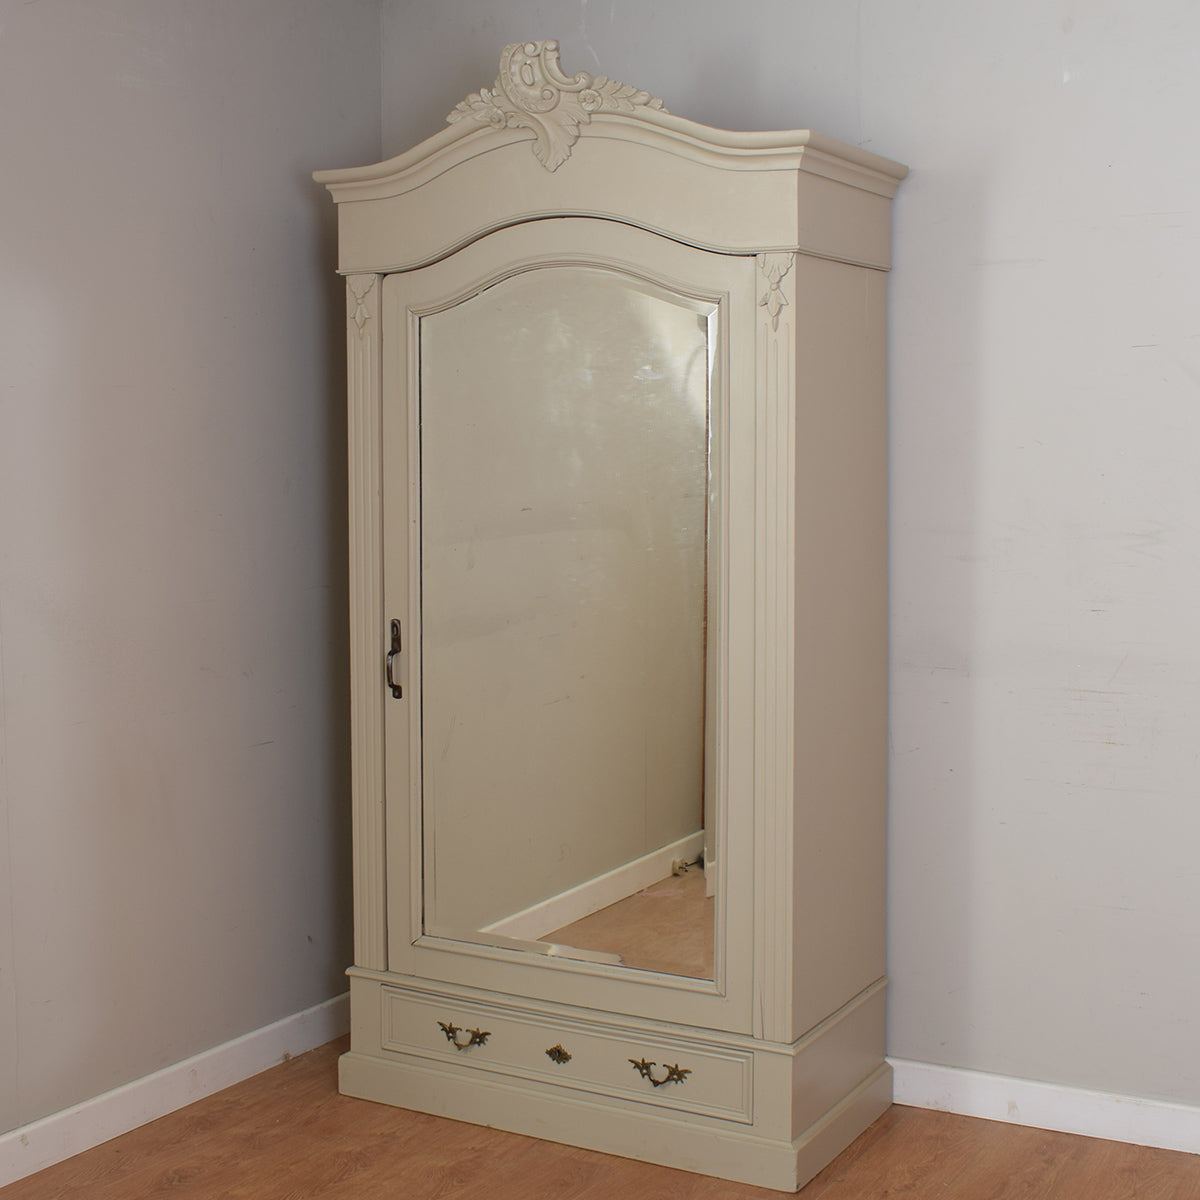 French Mirrored Wardrobe / Armoire